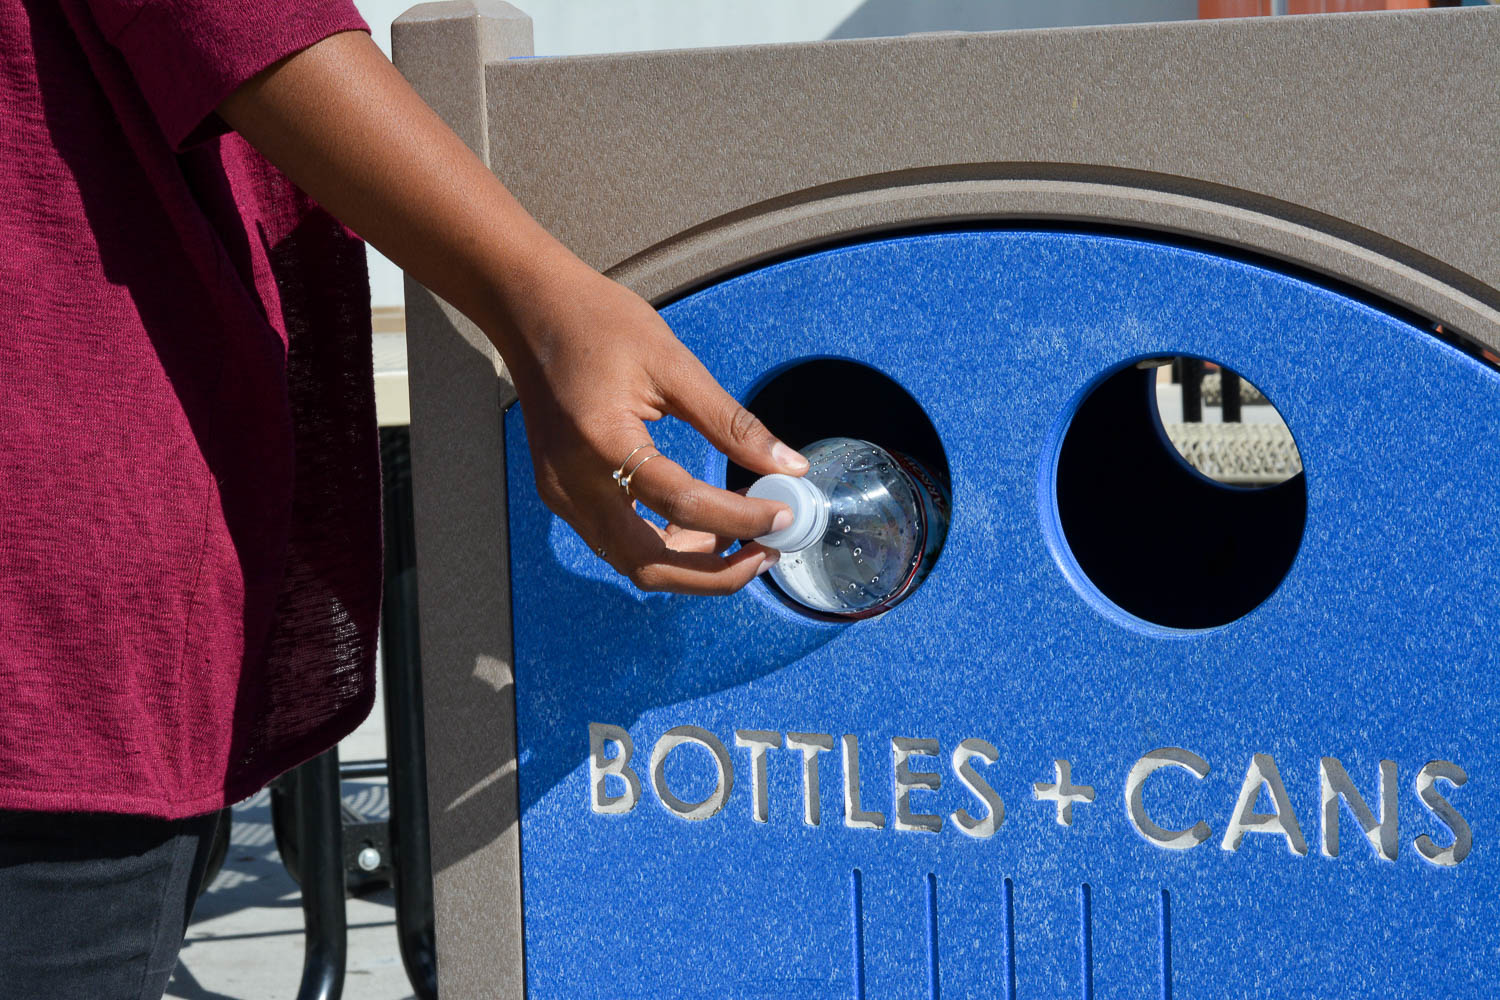 Even though students are encouraged to recycle their water bottles and cans, since China is no longer accepting plastic from the West, the better option is to start using a mental, reusable bottle to store your water. The plastic is sent to a landfill anyway, so there is no profit when one recycles a used bottle.